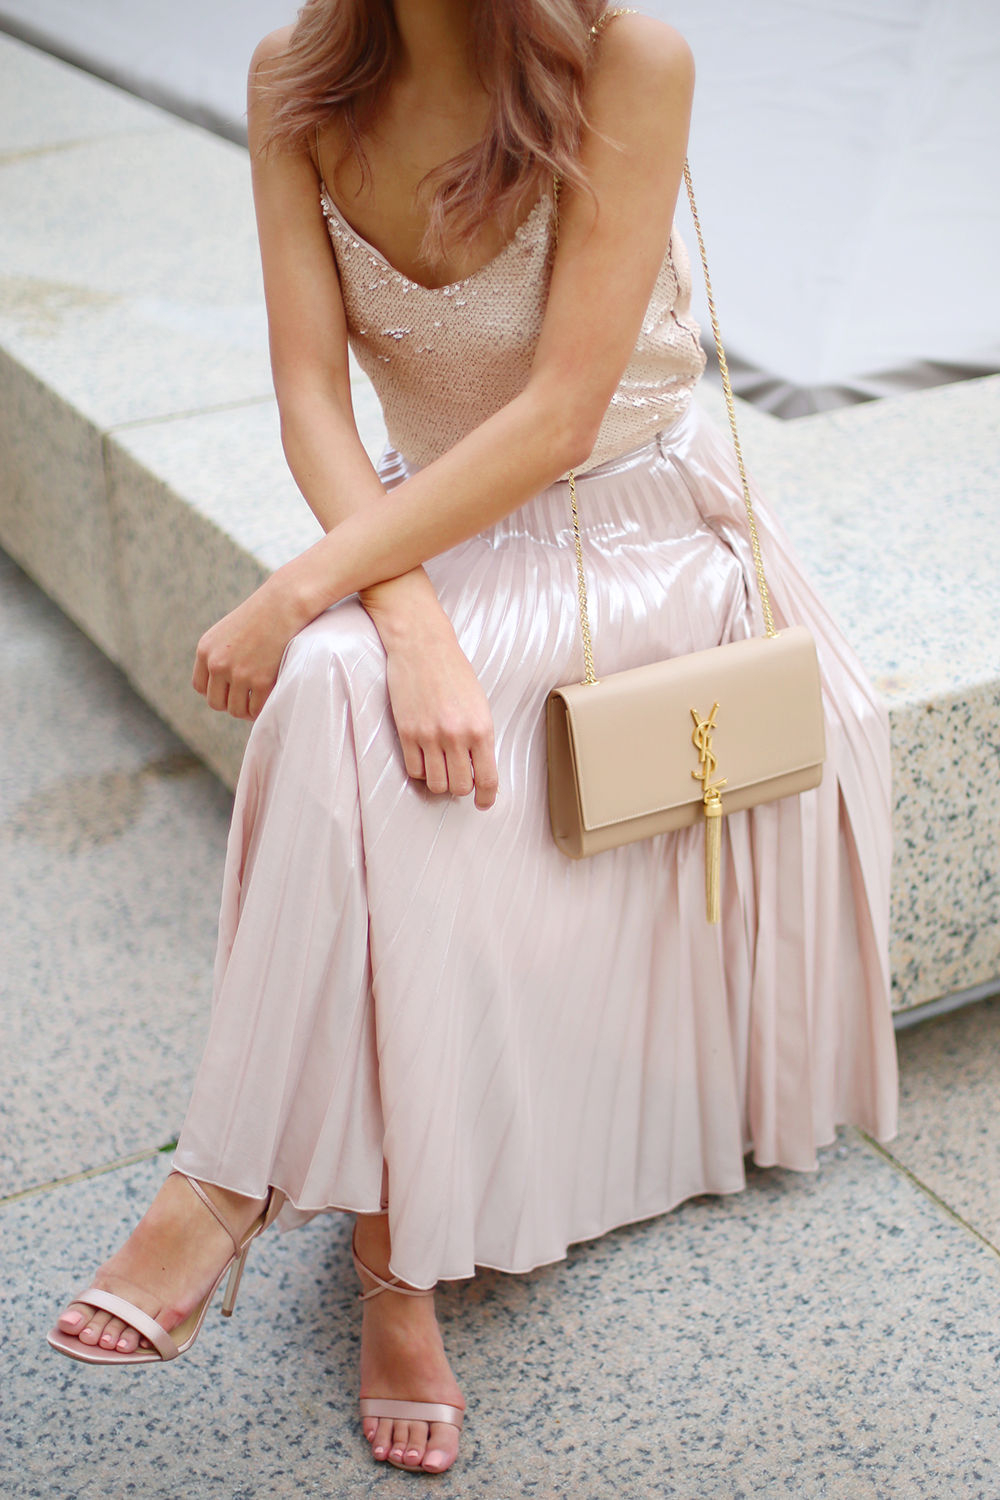 Beyond Basic Blog Pink Pleated Metallic Midi Skirt Sequin Cami Nude YSL Kate Bag